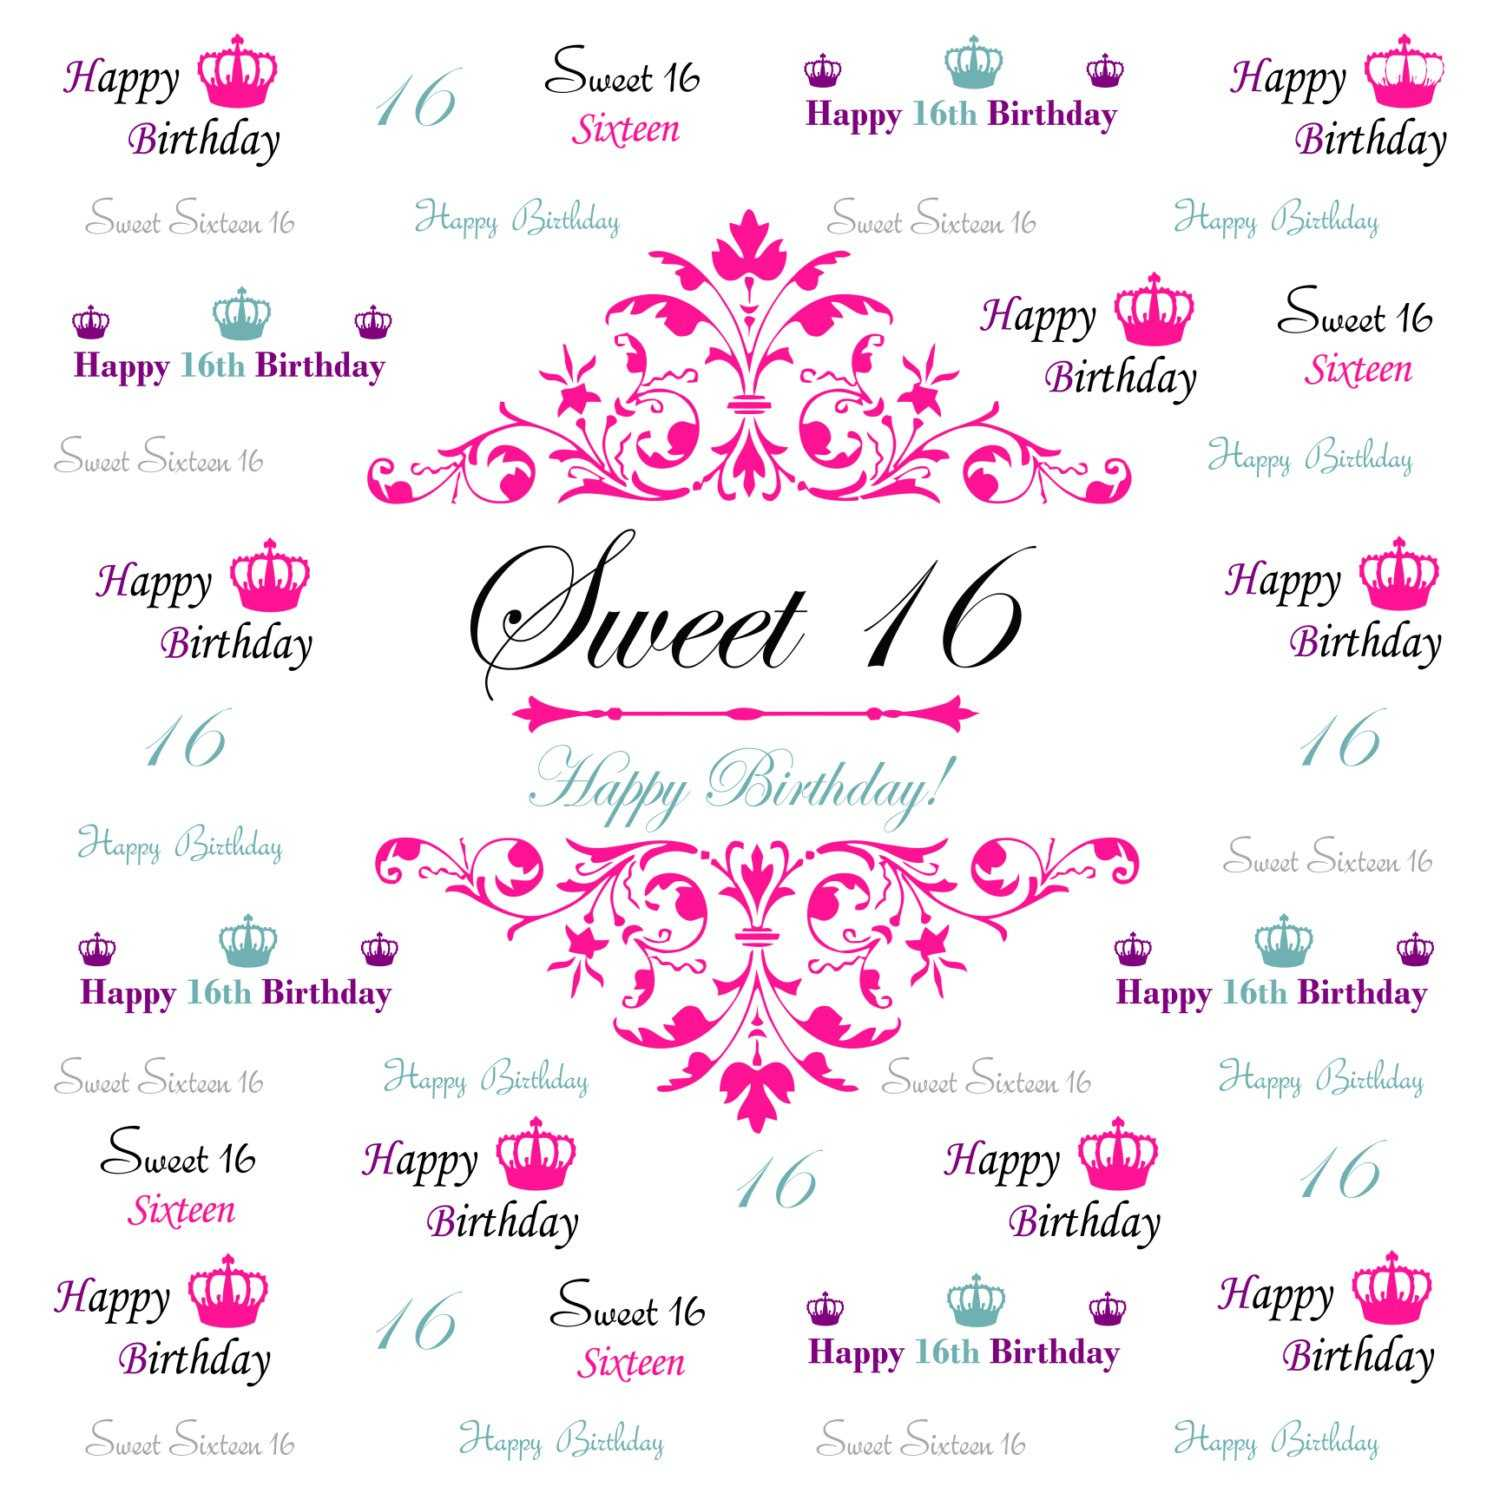 Sweet 16 Banner Template - Atlantaauctionco With Sweet 16 Banner Template